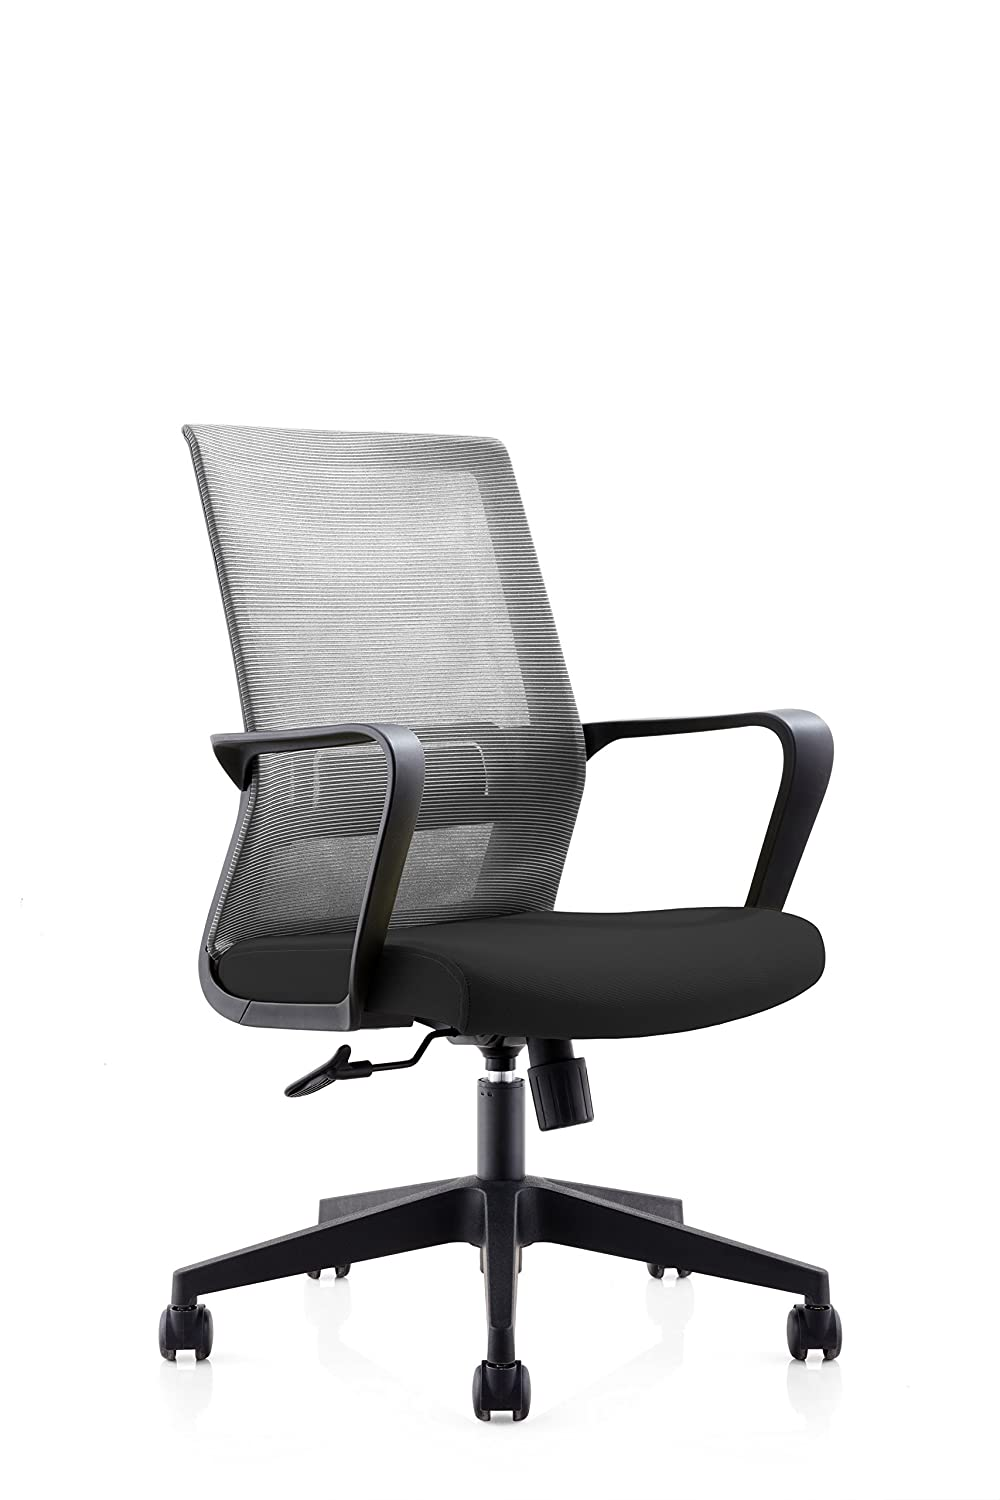 UZUO Mesh Mid-Back Office Chair with Ajustable Lumbar Support Task Chair Computer Chair Desk Chair with Fixed Armrest for Home Office,Black